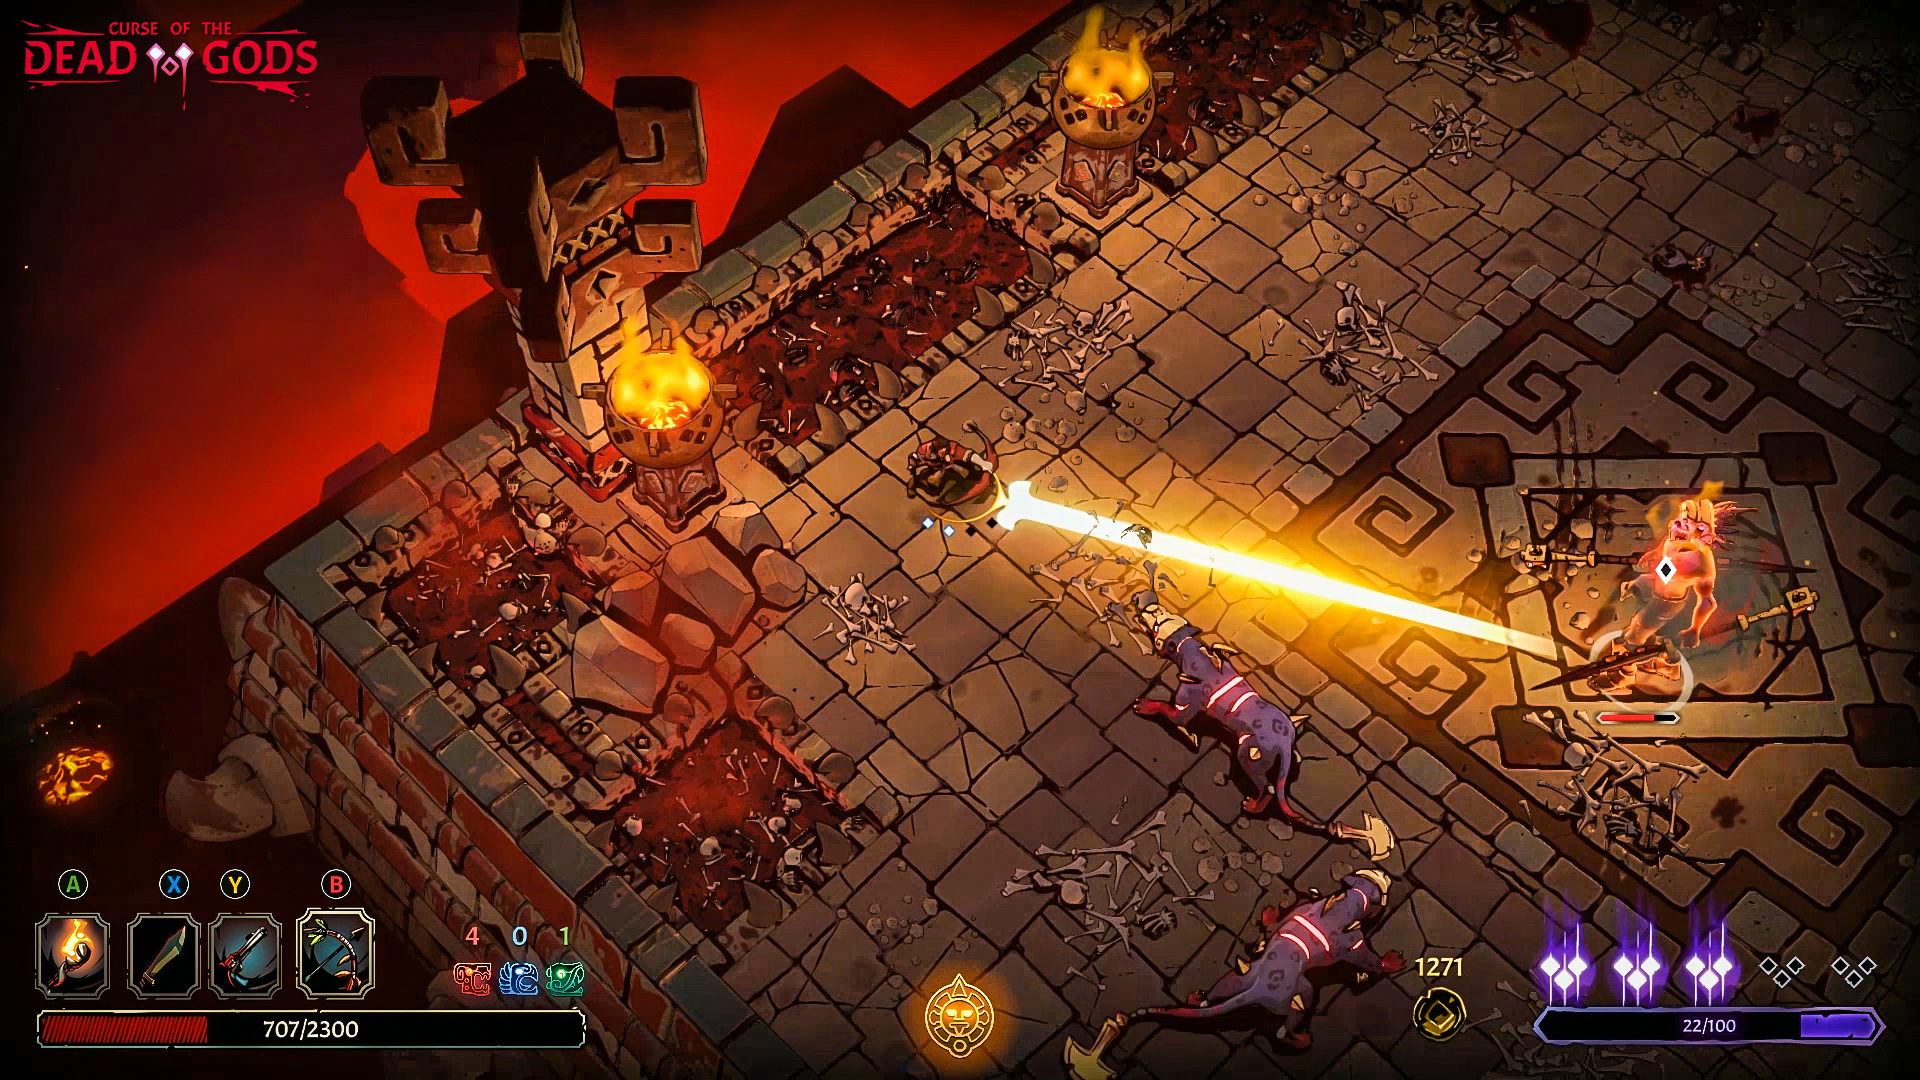 PAX East 2020: Curse of The Dead Gods Hands-On Preview - A Worthy Sacrifice